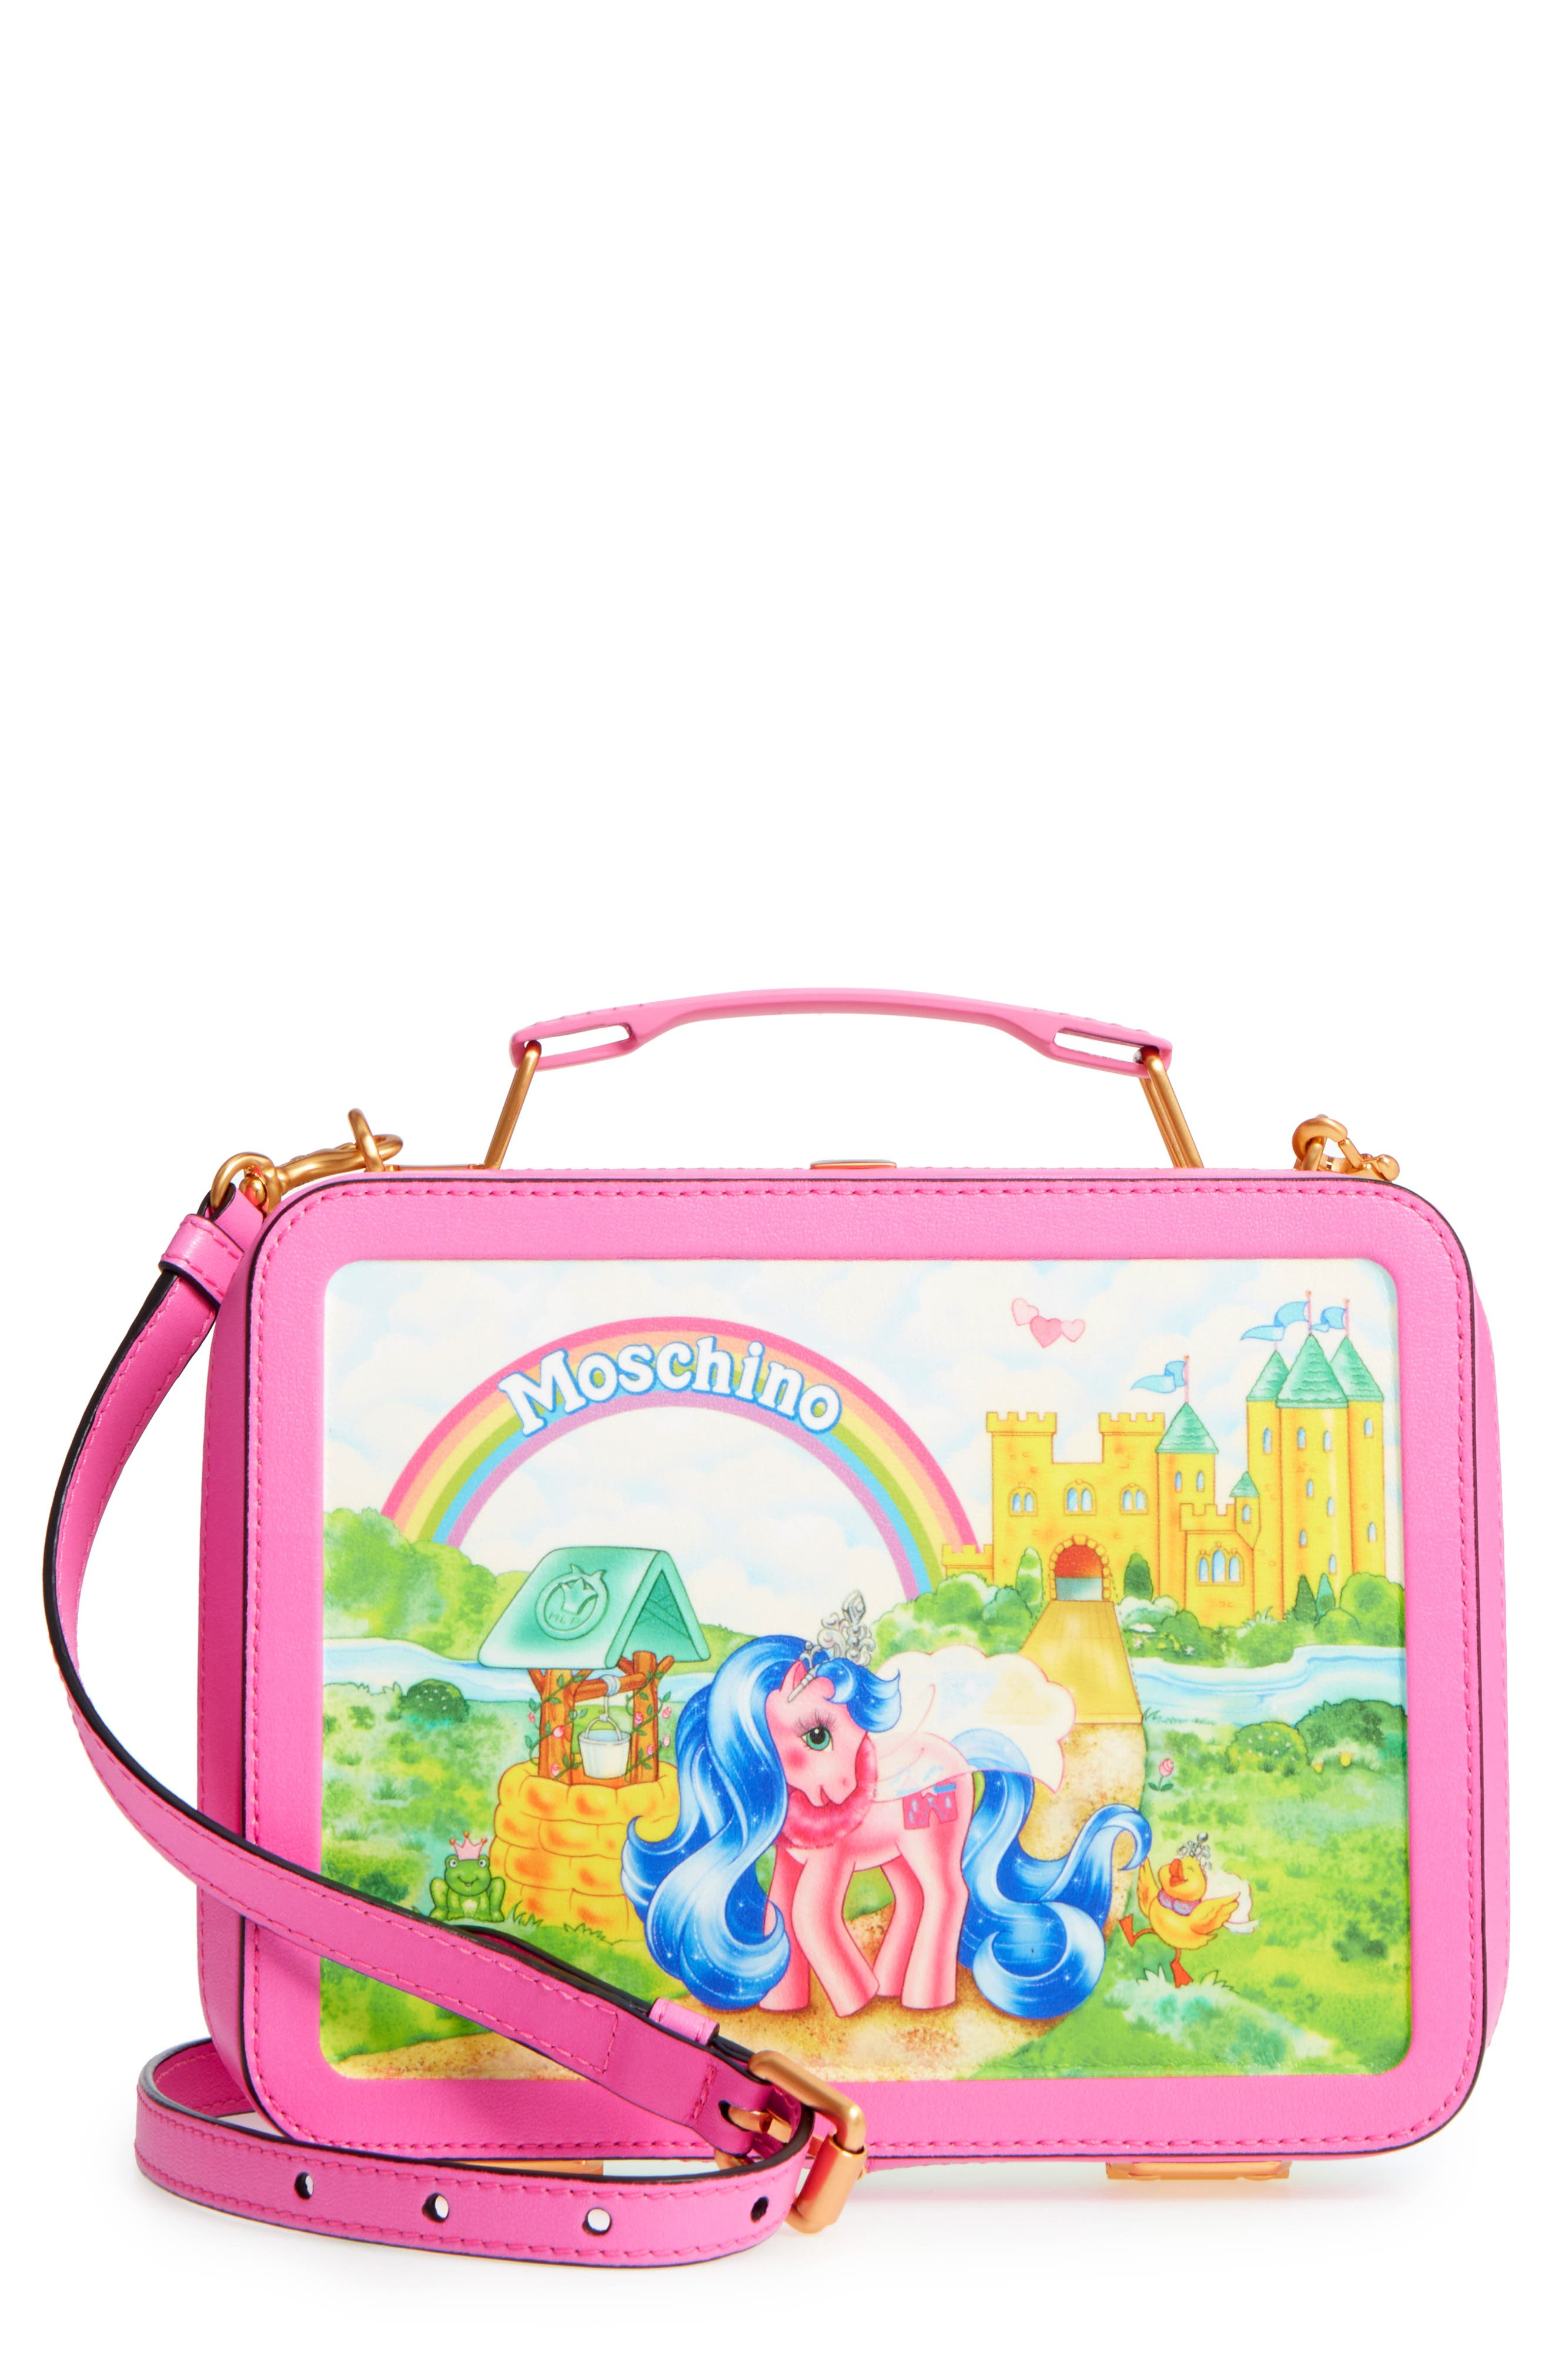 moschino x my little pony leather lunch box pink. Black Bedroom Furniture Sets. Home Design Ideas